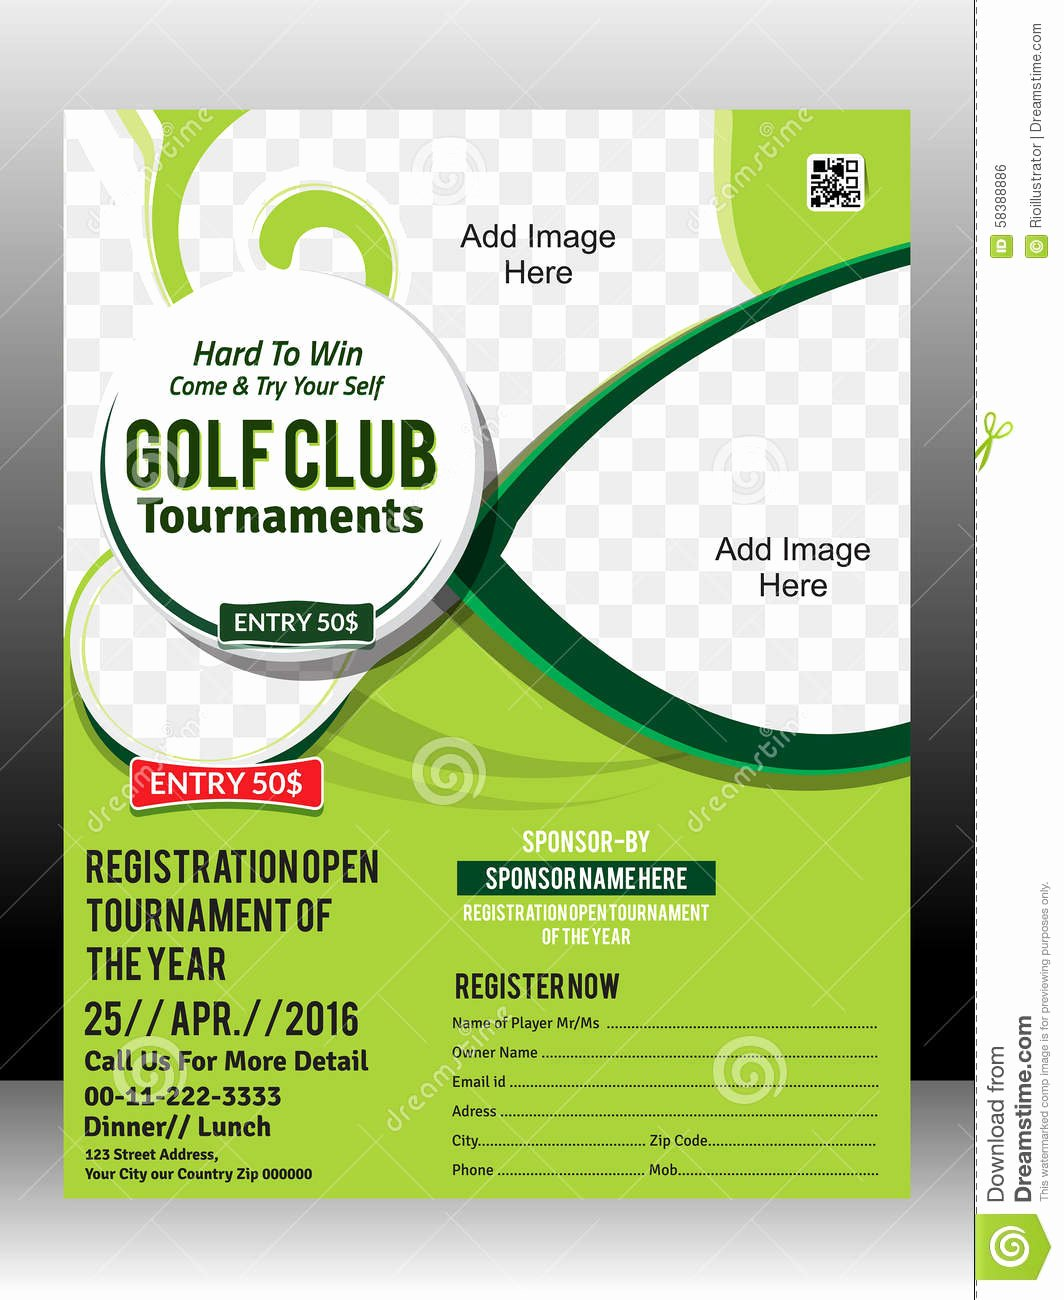 Free Golf tournament Flyers Templates New Free Golf tournament Flyer Template – Emmamcintyrephotography